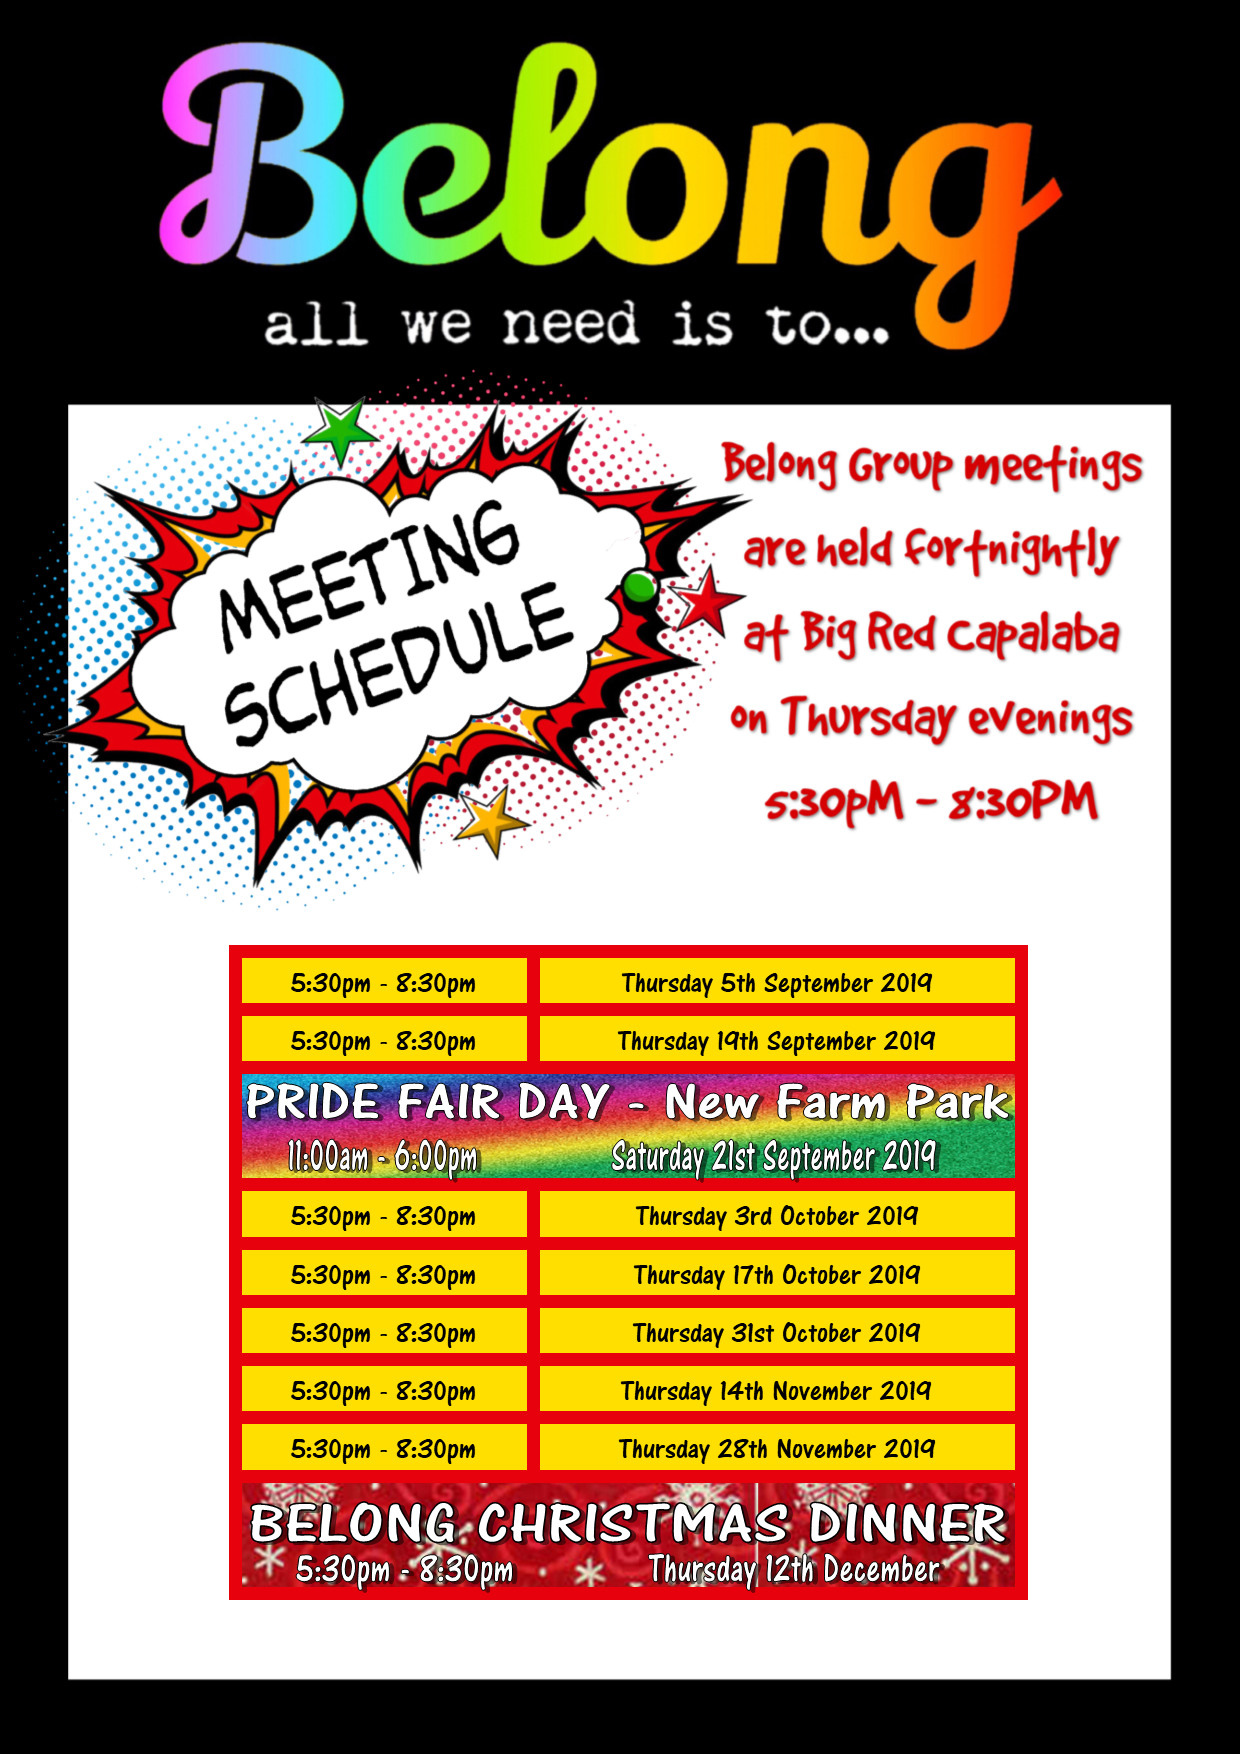 Belong 2019 Meeting Schedule - a peer-led support space for the LGBTQA+ community, with a focus on wellbeing, peer support, positive mental health and suicide prevention for people who identify as having diverse gender expression and sexual identity. A  safe space where the queer community can come, connect, support one another and build mutual, authentic connections with their peers that support their wellness. A place for rainbow people to find their tribe at Bayside Initiatives Group Inc.. - BIG is a peer support community where people who experience mental health challenges walk alongside each other on the journey of recovery. A safe place where people can recover whole of life wellbeing and live full lives in the community. As the first Peer-Operated Mental Health Service in Queensland, BIG has been at the forefront of the Peer Movement in Australia for the last two decades, while still retaining it's grassroots values and authentic connection to community. A true gem of the mental health sector in Redland City, QLD.